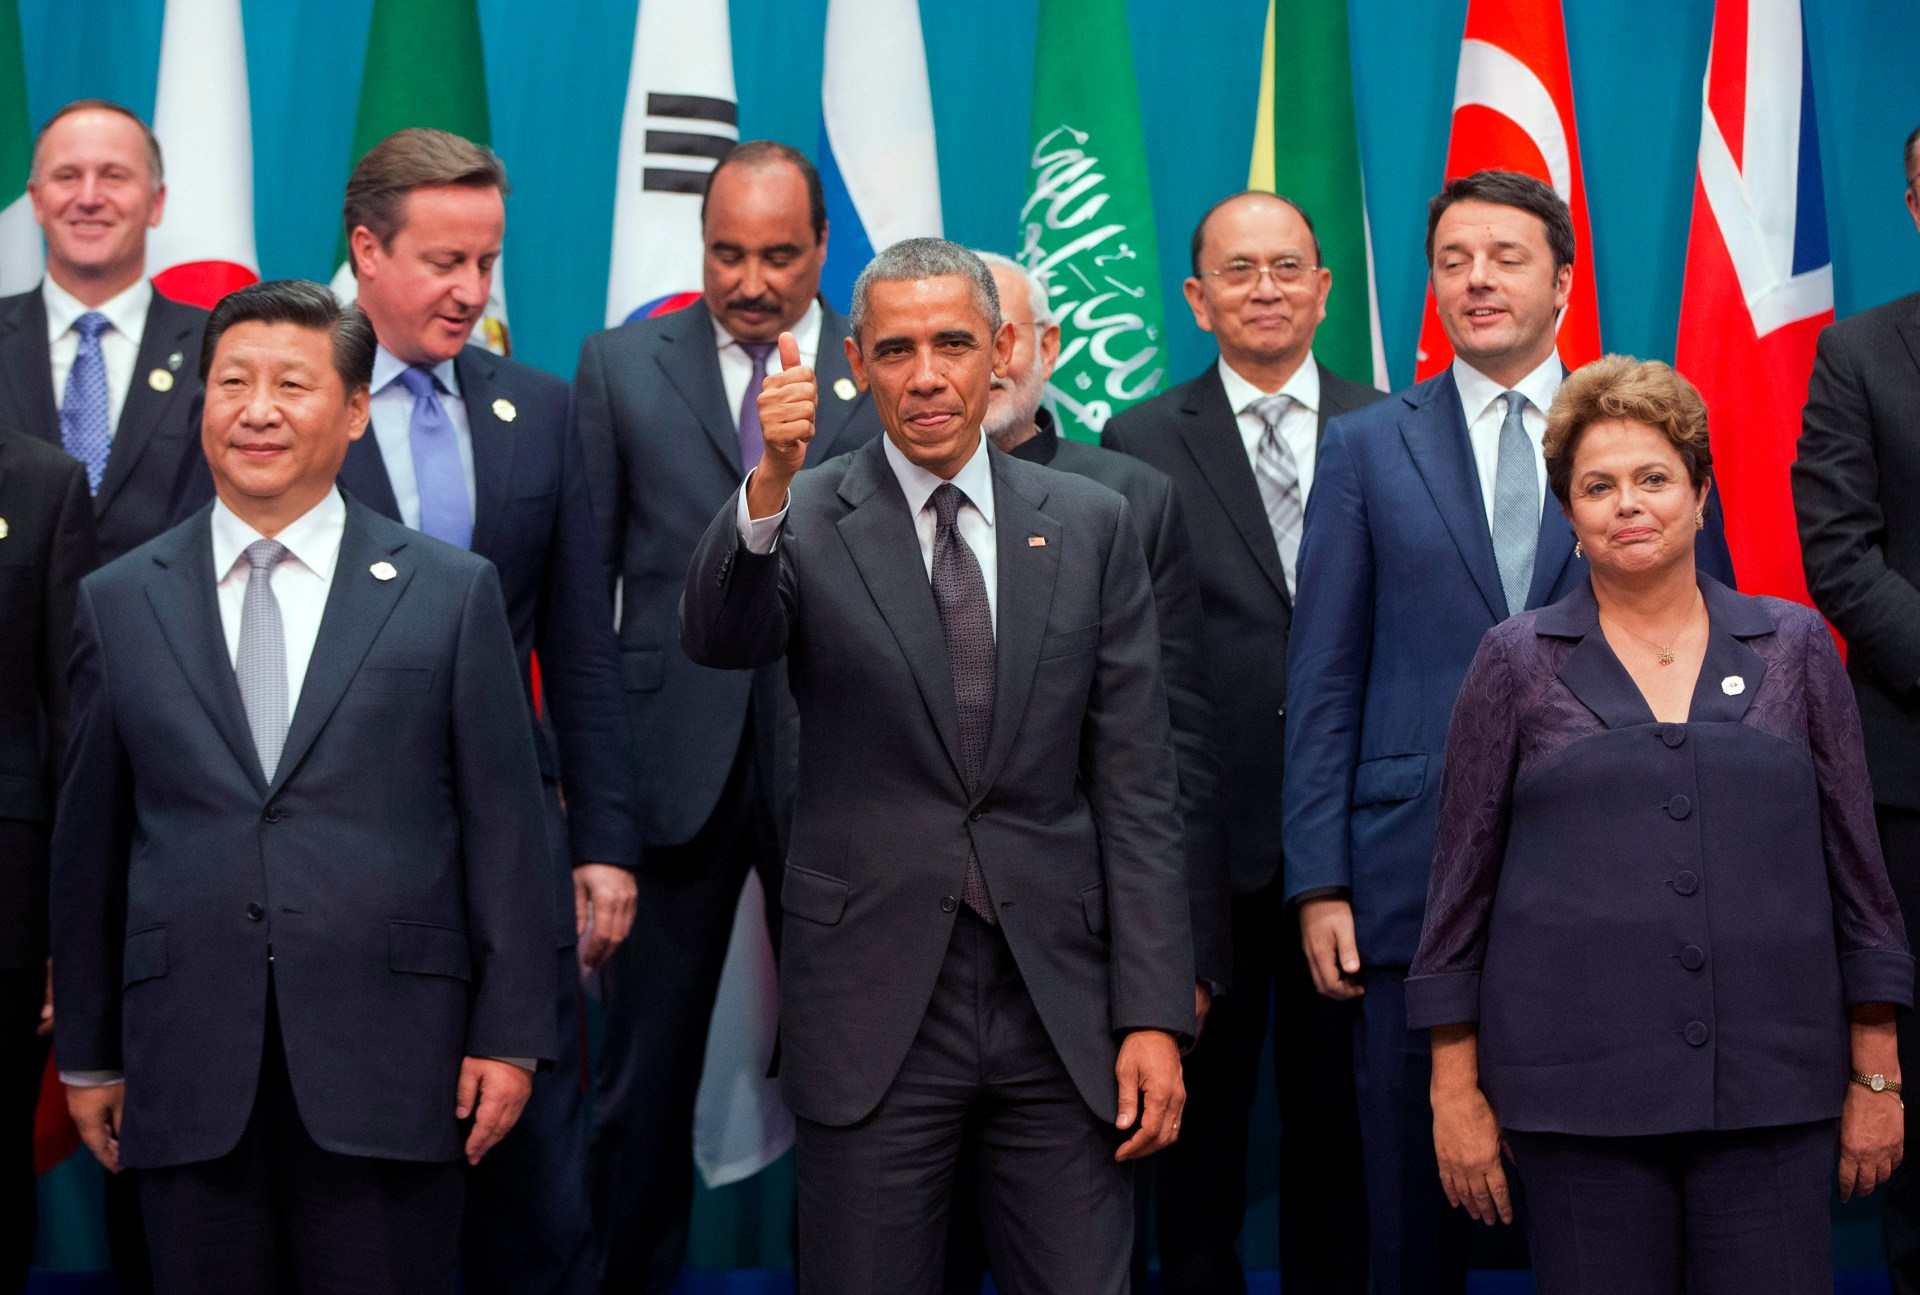 Reuters/Pablo Martinez Monsivais - U.S. President Barack Obama gives a thumbs-up to the camera as he and other leaders pose for a group photo at the G20 summit in Brisbane November 15, 2014.